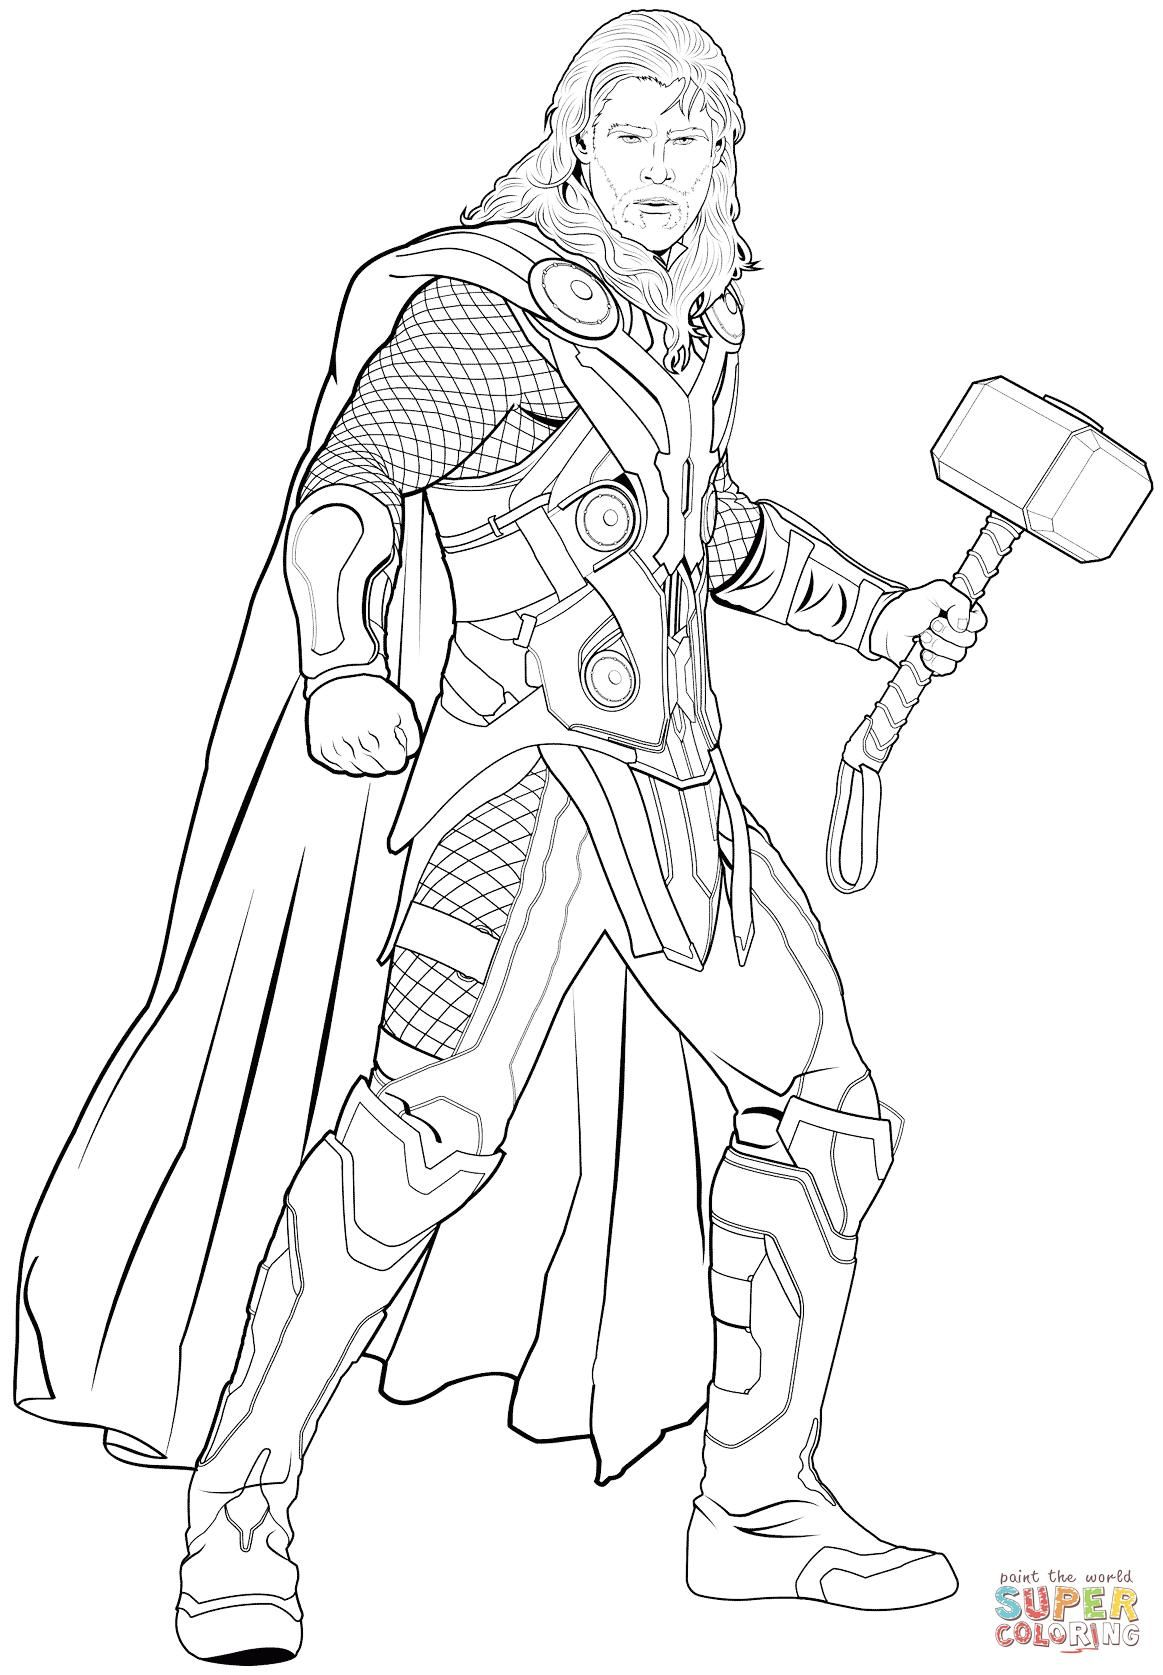 thor coloring pages thor avengers drawing at getdrawings free download pages coloring thor